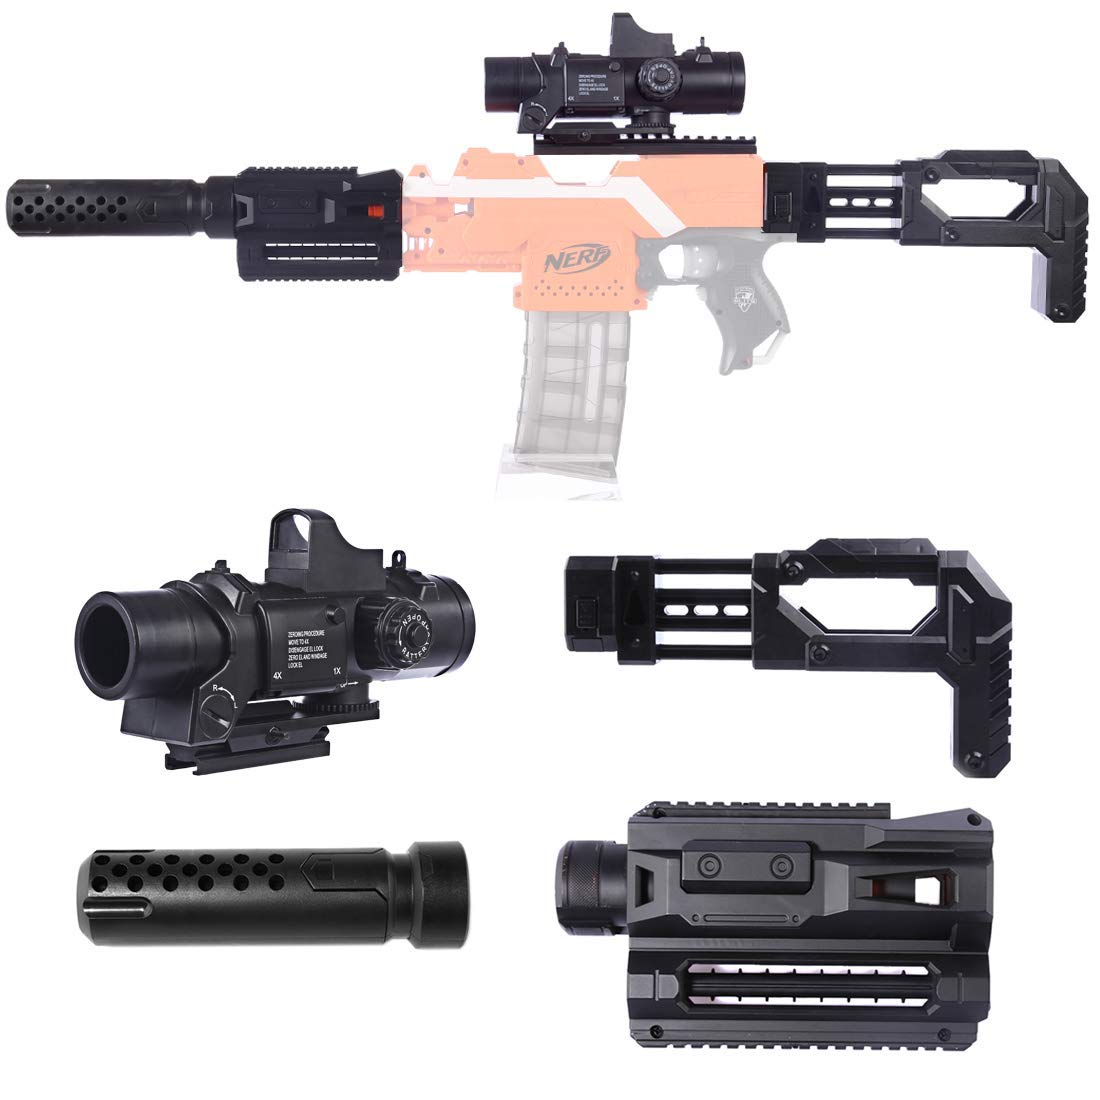 ANNA SHOP Upgrade Mods Kit for Nerf with 6X Targeting Scope,Magazin Clip Holder,Deco Silencer ,Tube Adapter